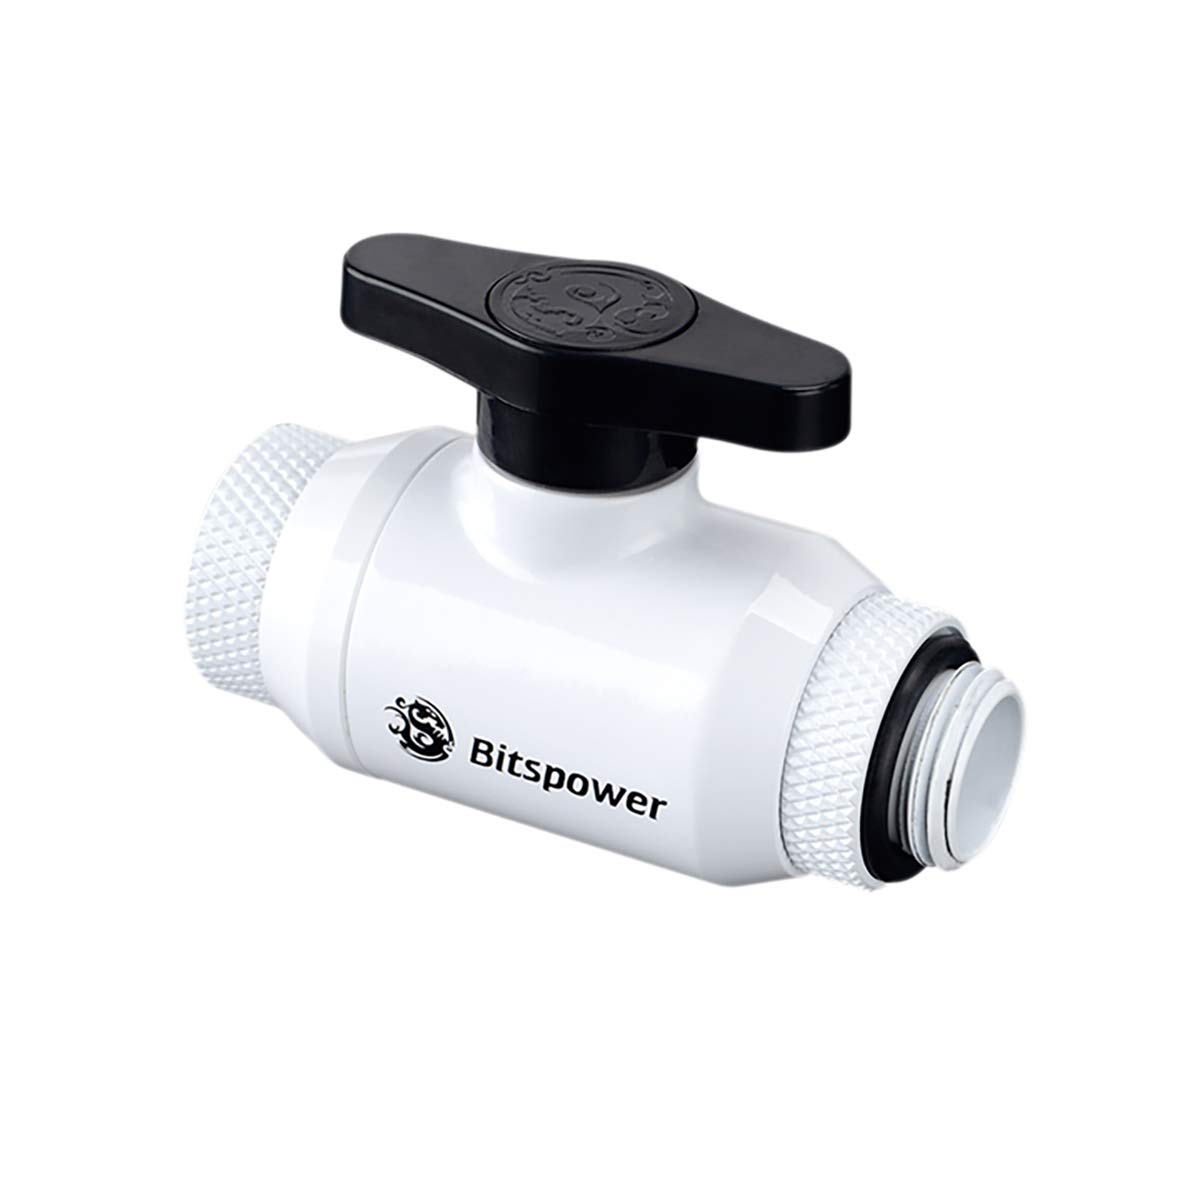 Bitspower G1/ 4 Inch Sled Dual Rotary (360 Degrees Rotation) Mini Valve Sparkle with G 1/4 Inch Extender Black